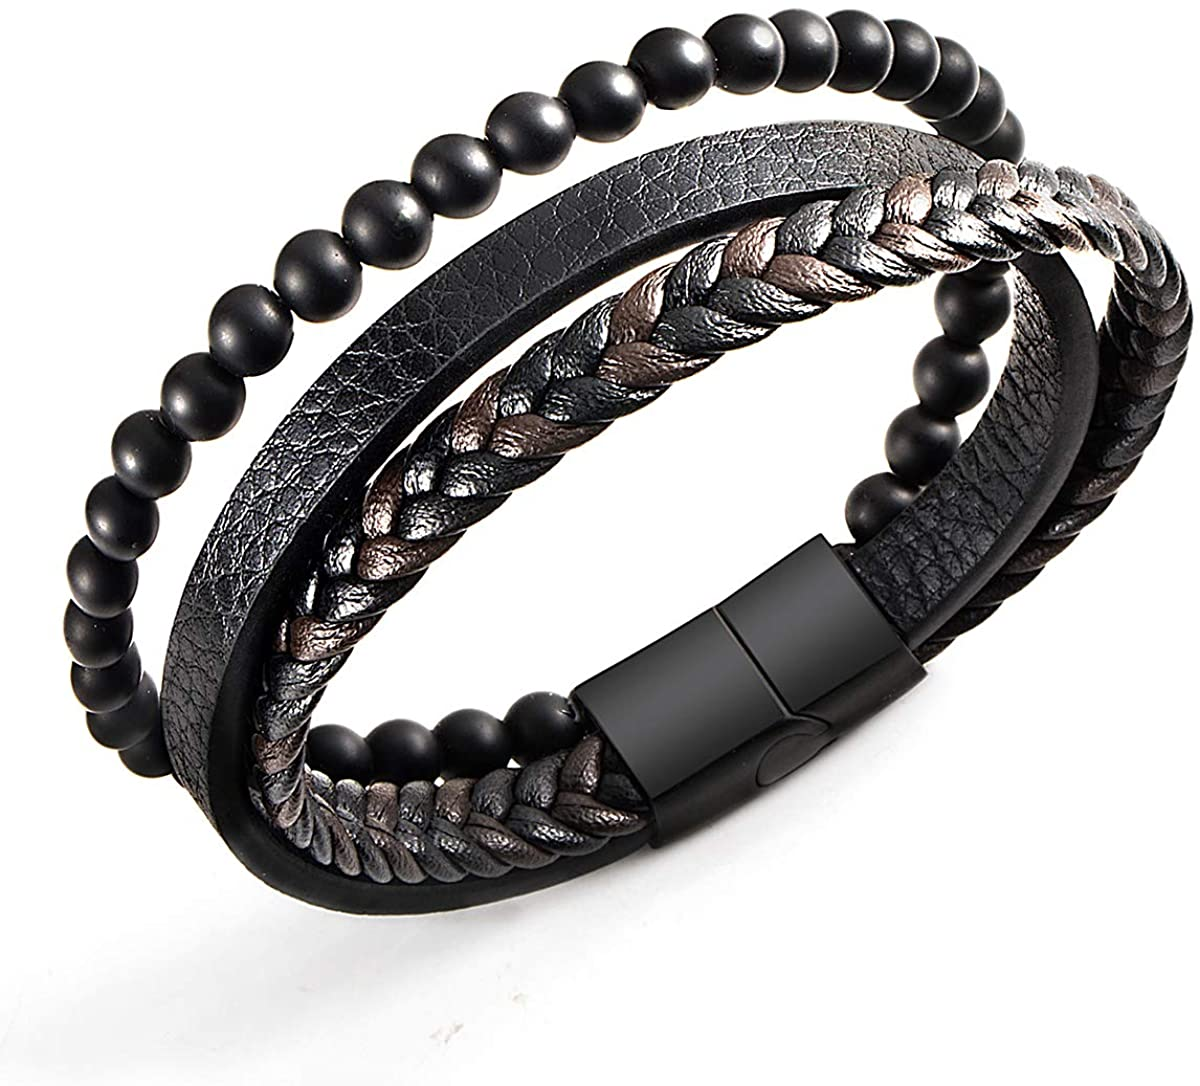 New Mens Bracelet Bead and Leather Braided, Lava and Onyx Bead Leather Bracelet for Men …